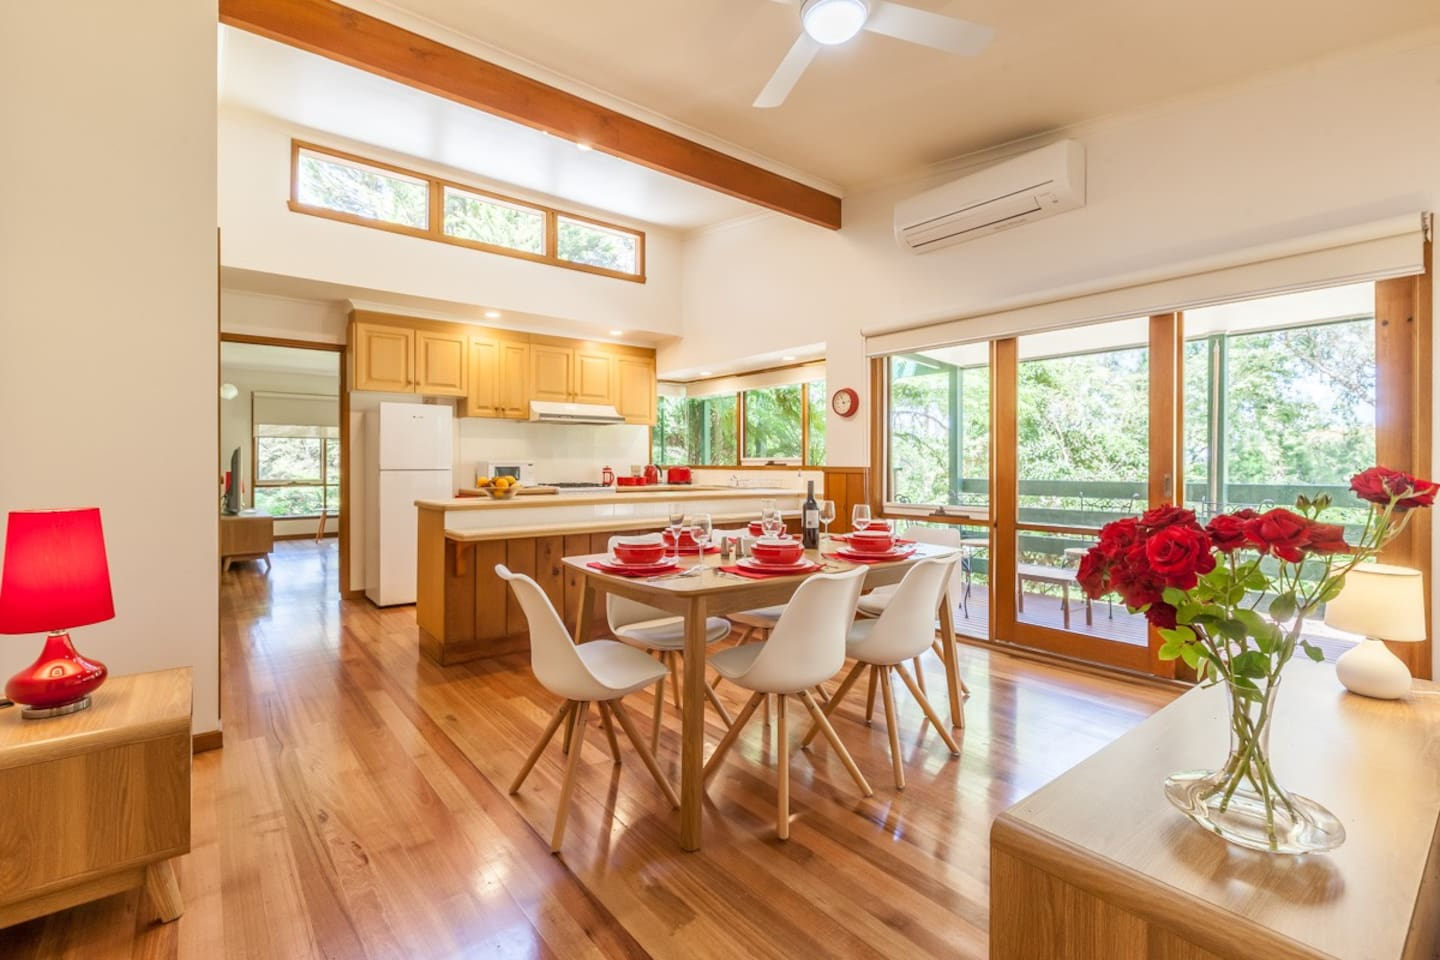 The spacious kitchen/dining area has a high ceiling and big windows making it light and bright.